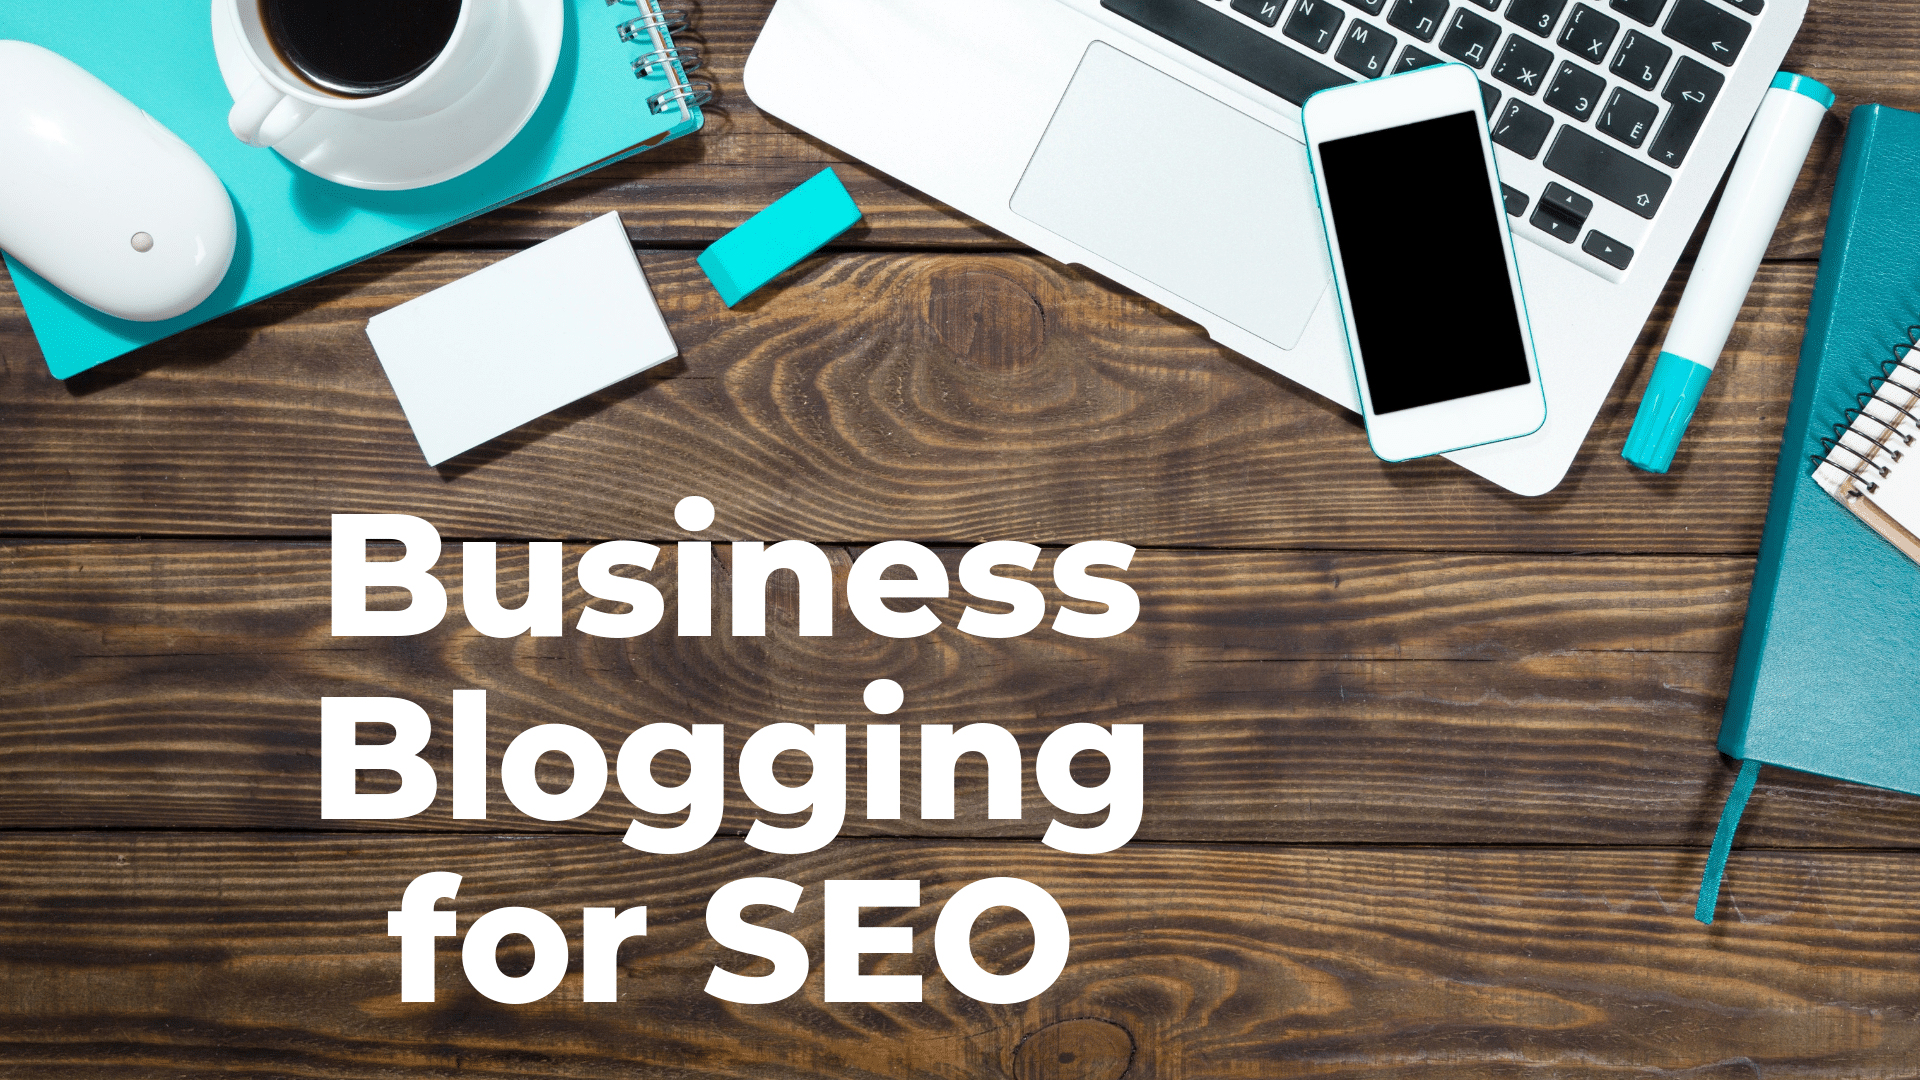 Business Blogging for SEO